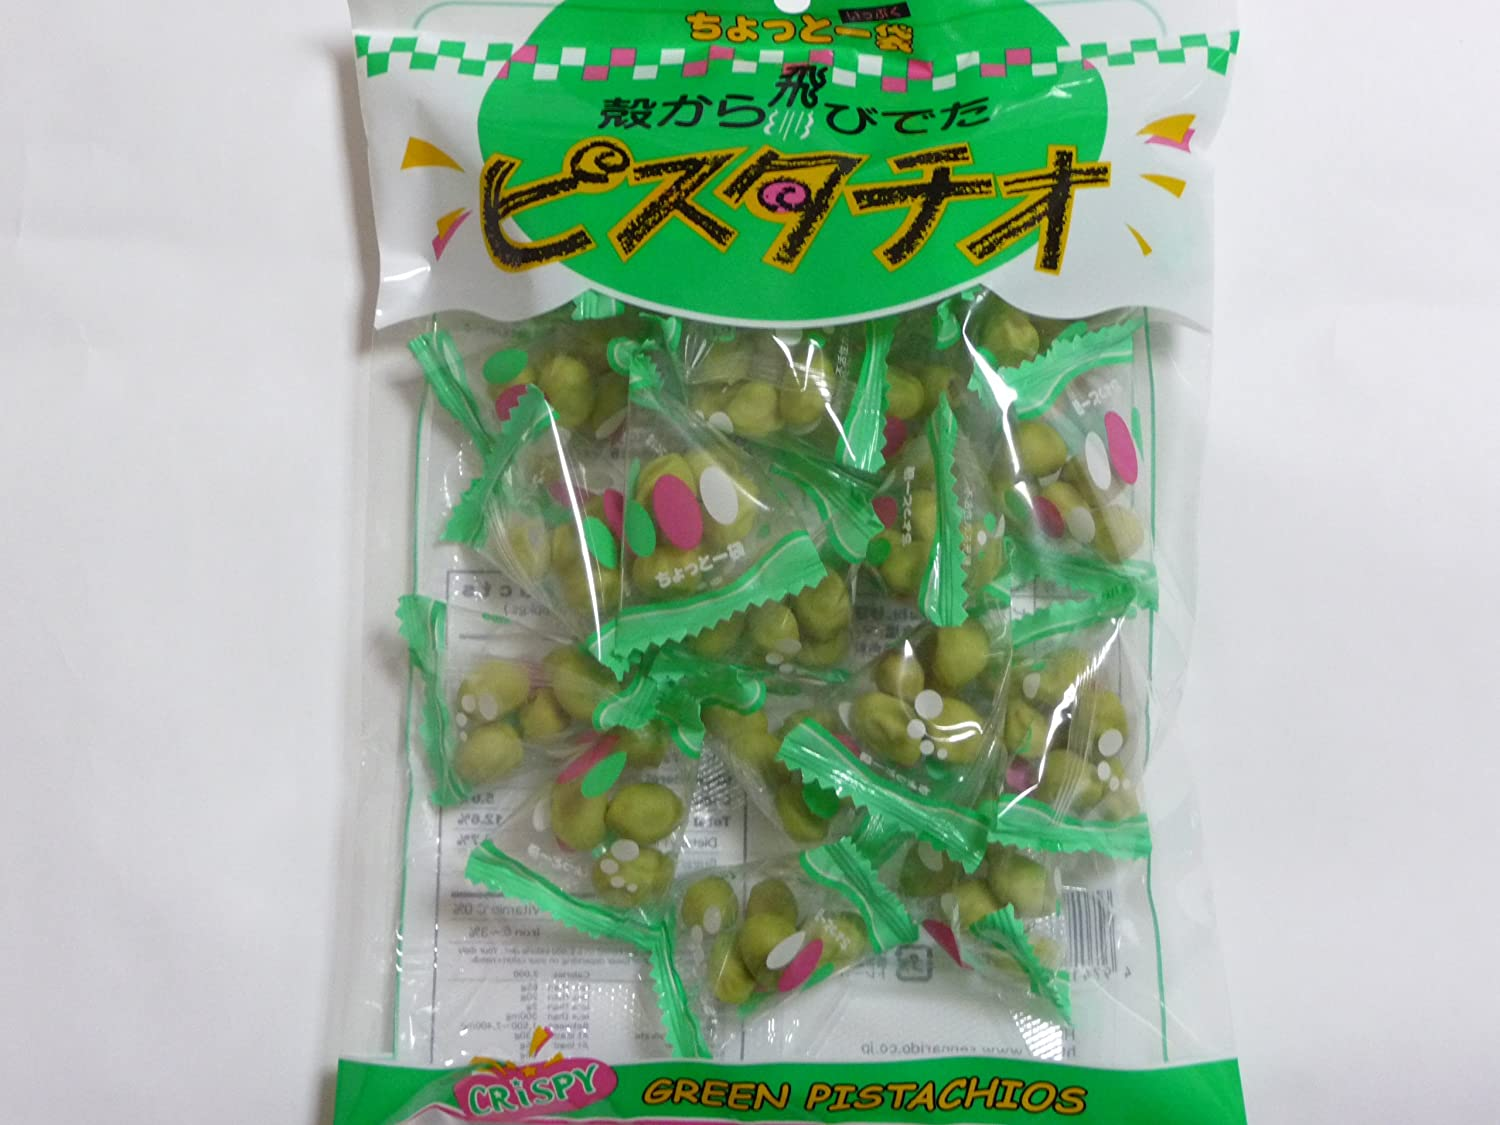 1 pack of Japanese Crisp 100g Max 82% OFF Cheap mail order shopping original Nuts Pistachio